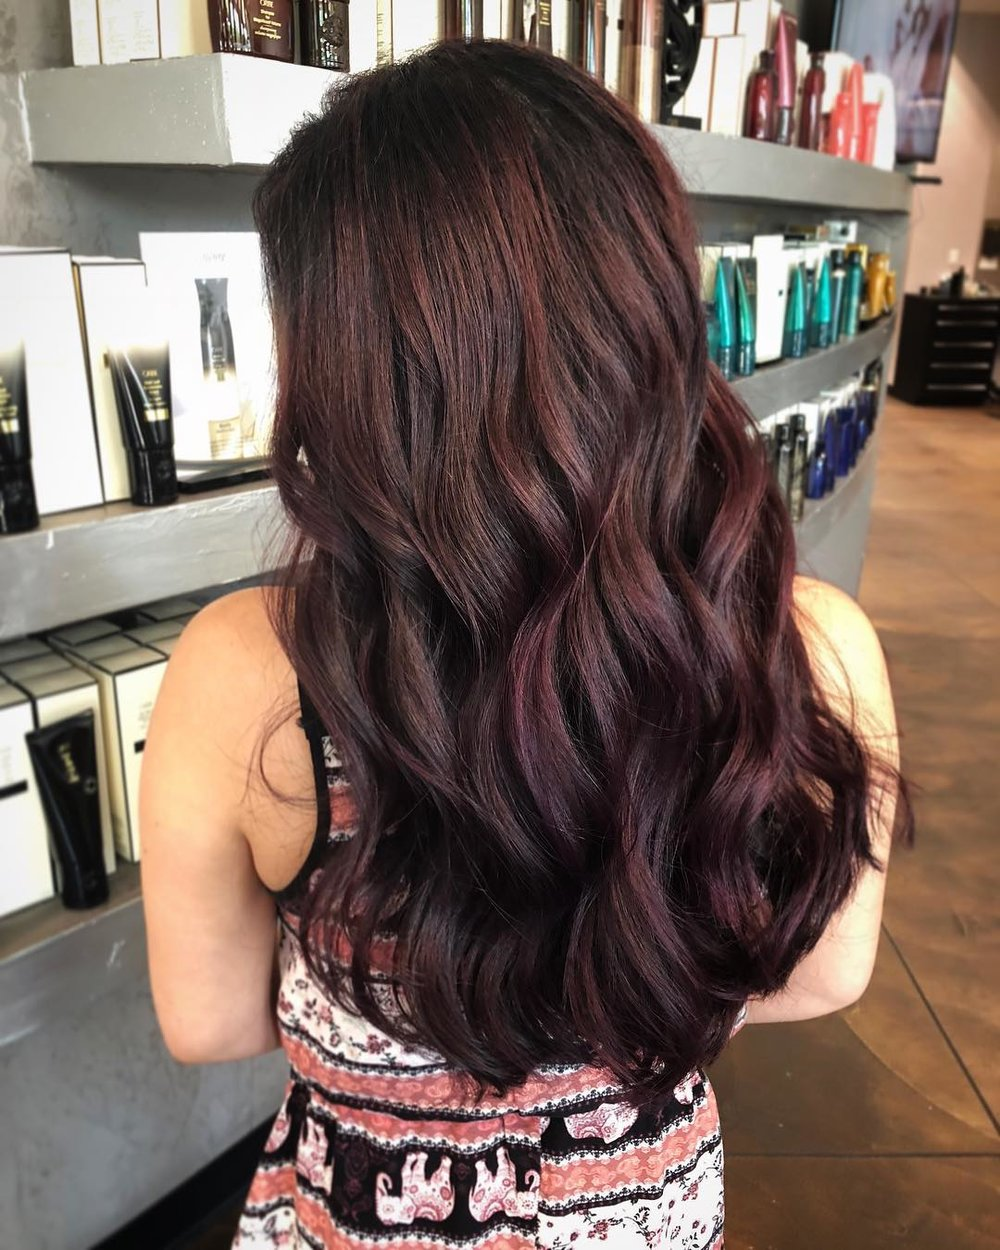 best-hair-styles-oklahoma-city (23).jpg